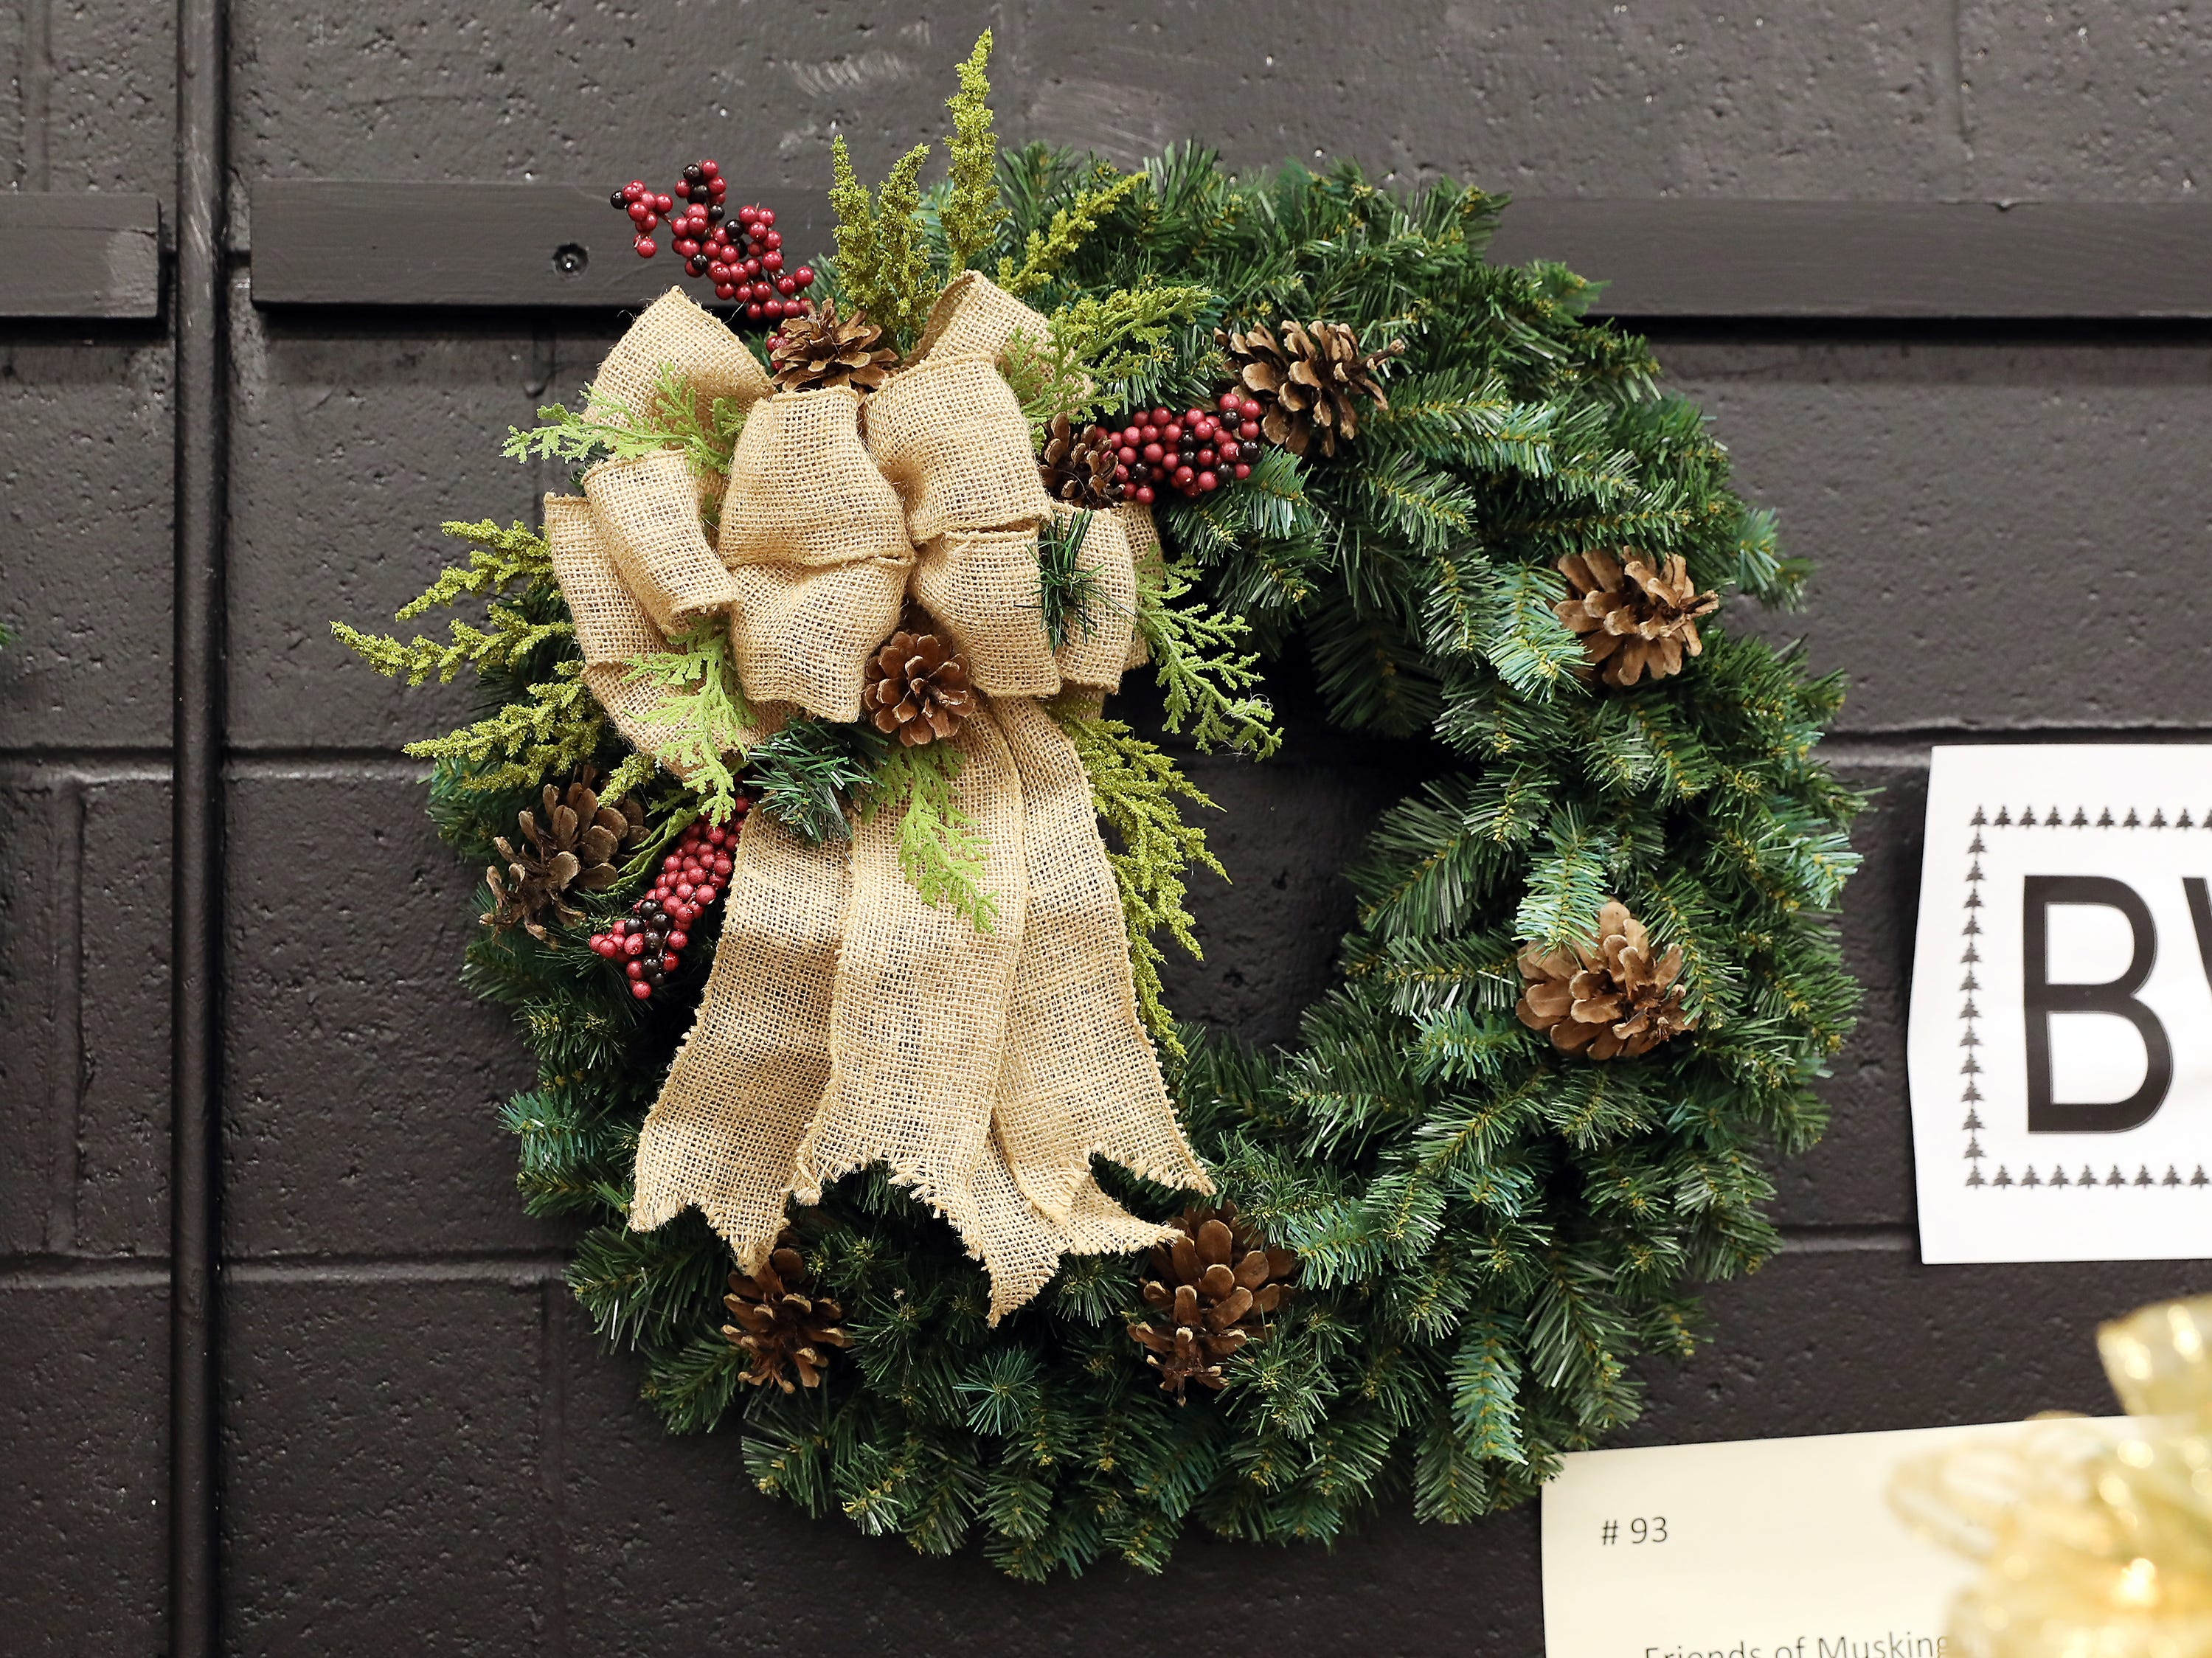 93	12:45 PM	Friends of Muskingum Valley Park District	Wreath	A Woodland Wreath	A green pine wreath - bring the outdoors in!  This wreath is decorated with pine cones, berries and a large burlap bow.		$25 membership to the Muskingum Valley Park District Friends Group which provides entry to a special members only event and additional perks at all the 2019 events.